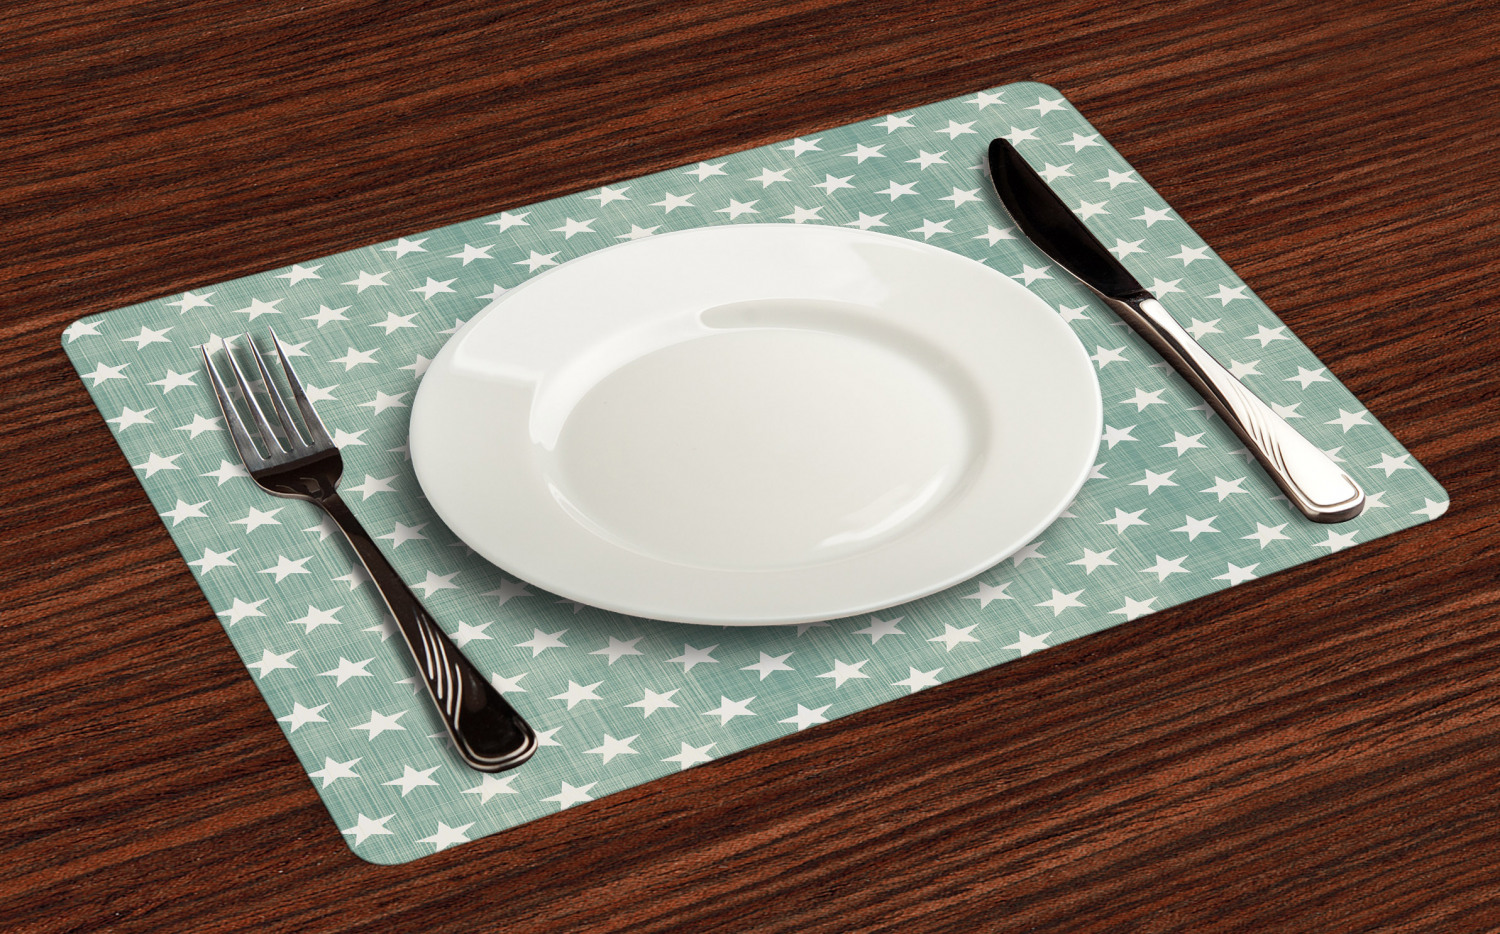 Ambesonne Abstract Placemat Set of 4 Fabric Place Mats for Table Decor